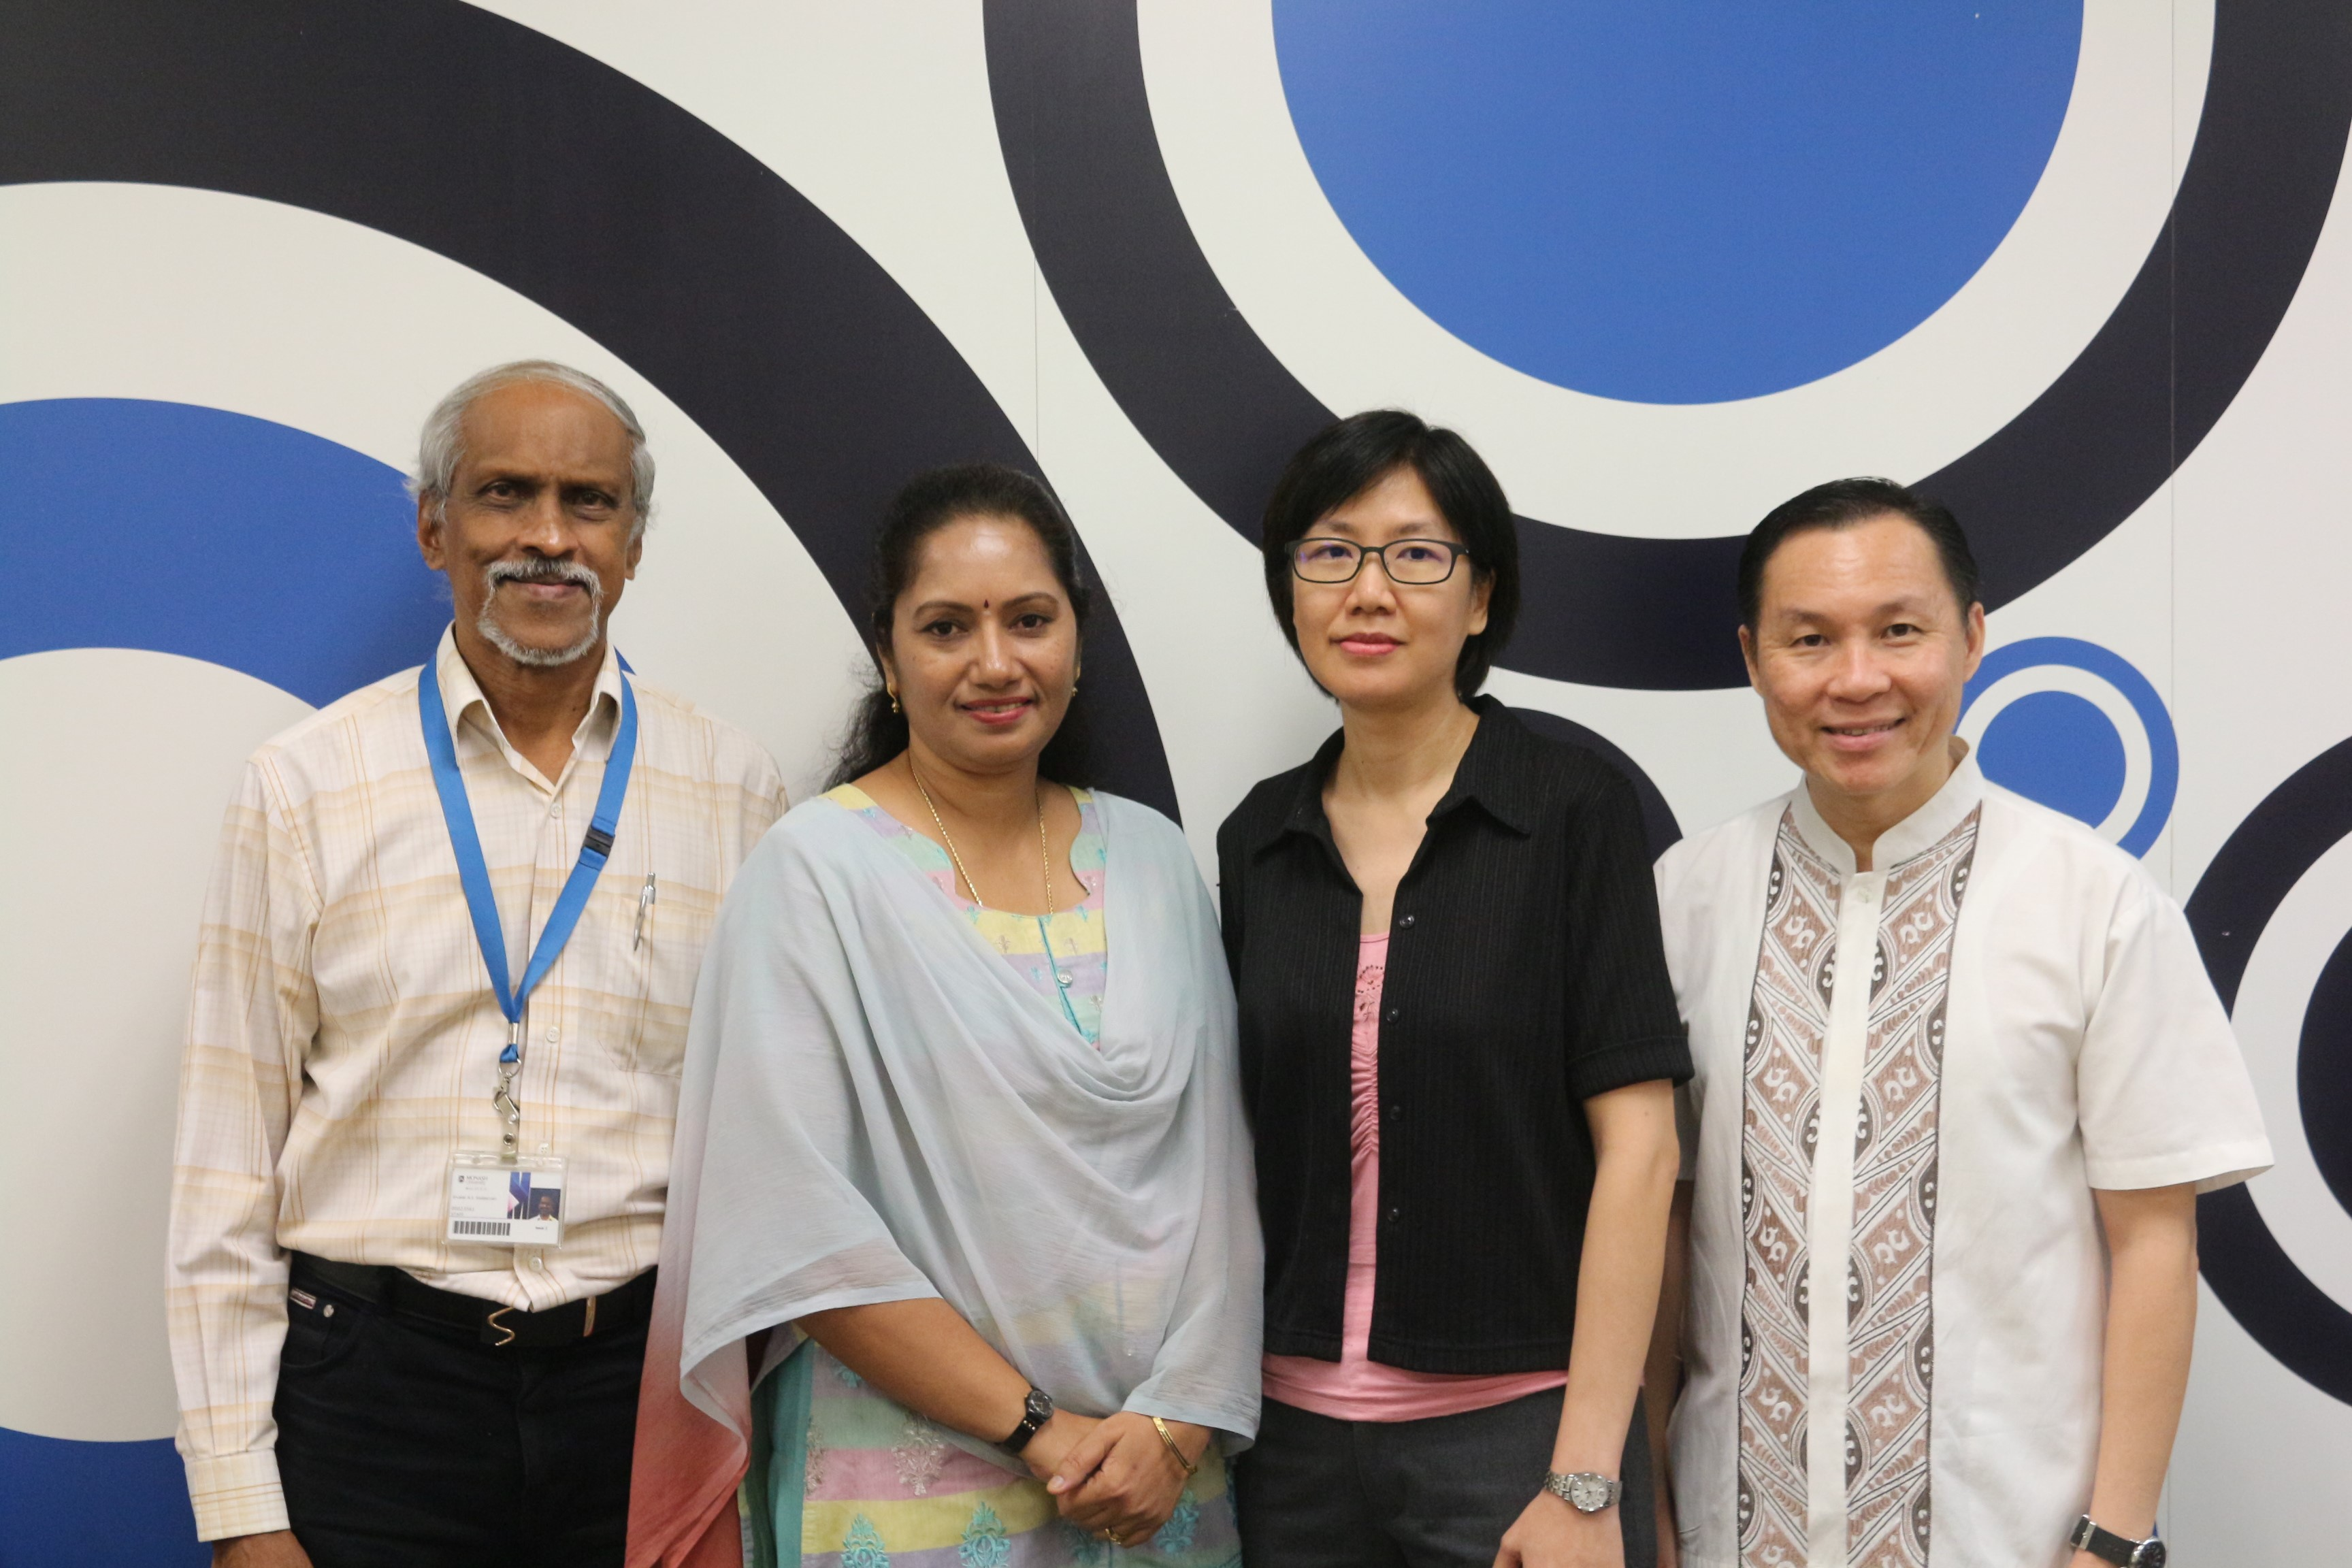 Malaysian team (from left to right): A/Prof Dr Sivalal Sivadasan, A/Prof Dr Amudha Kadirvelu, Dr Lee Chooi Yeng, Benny Efendie